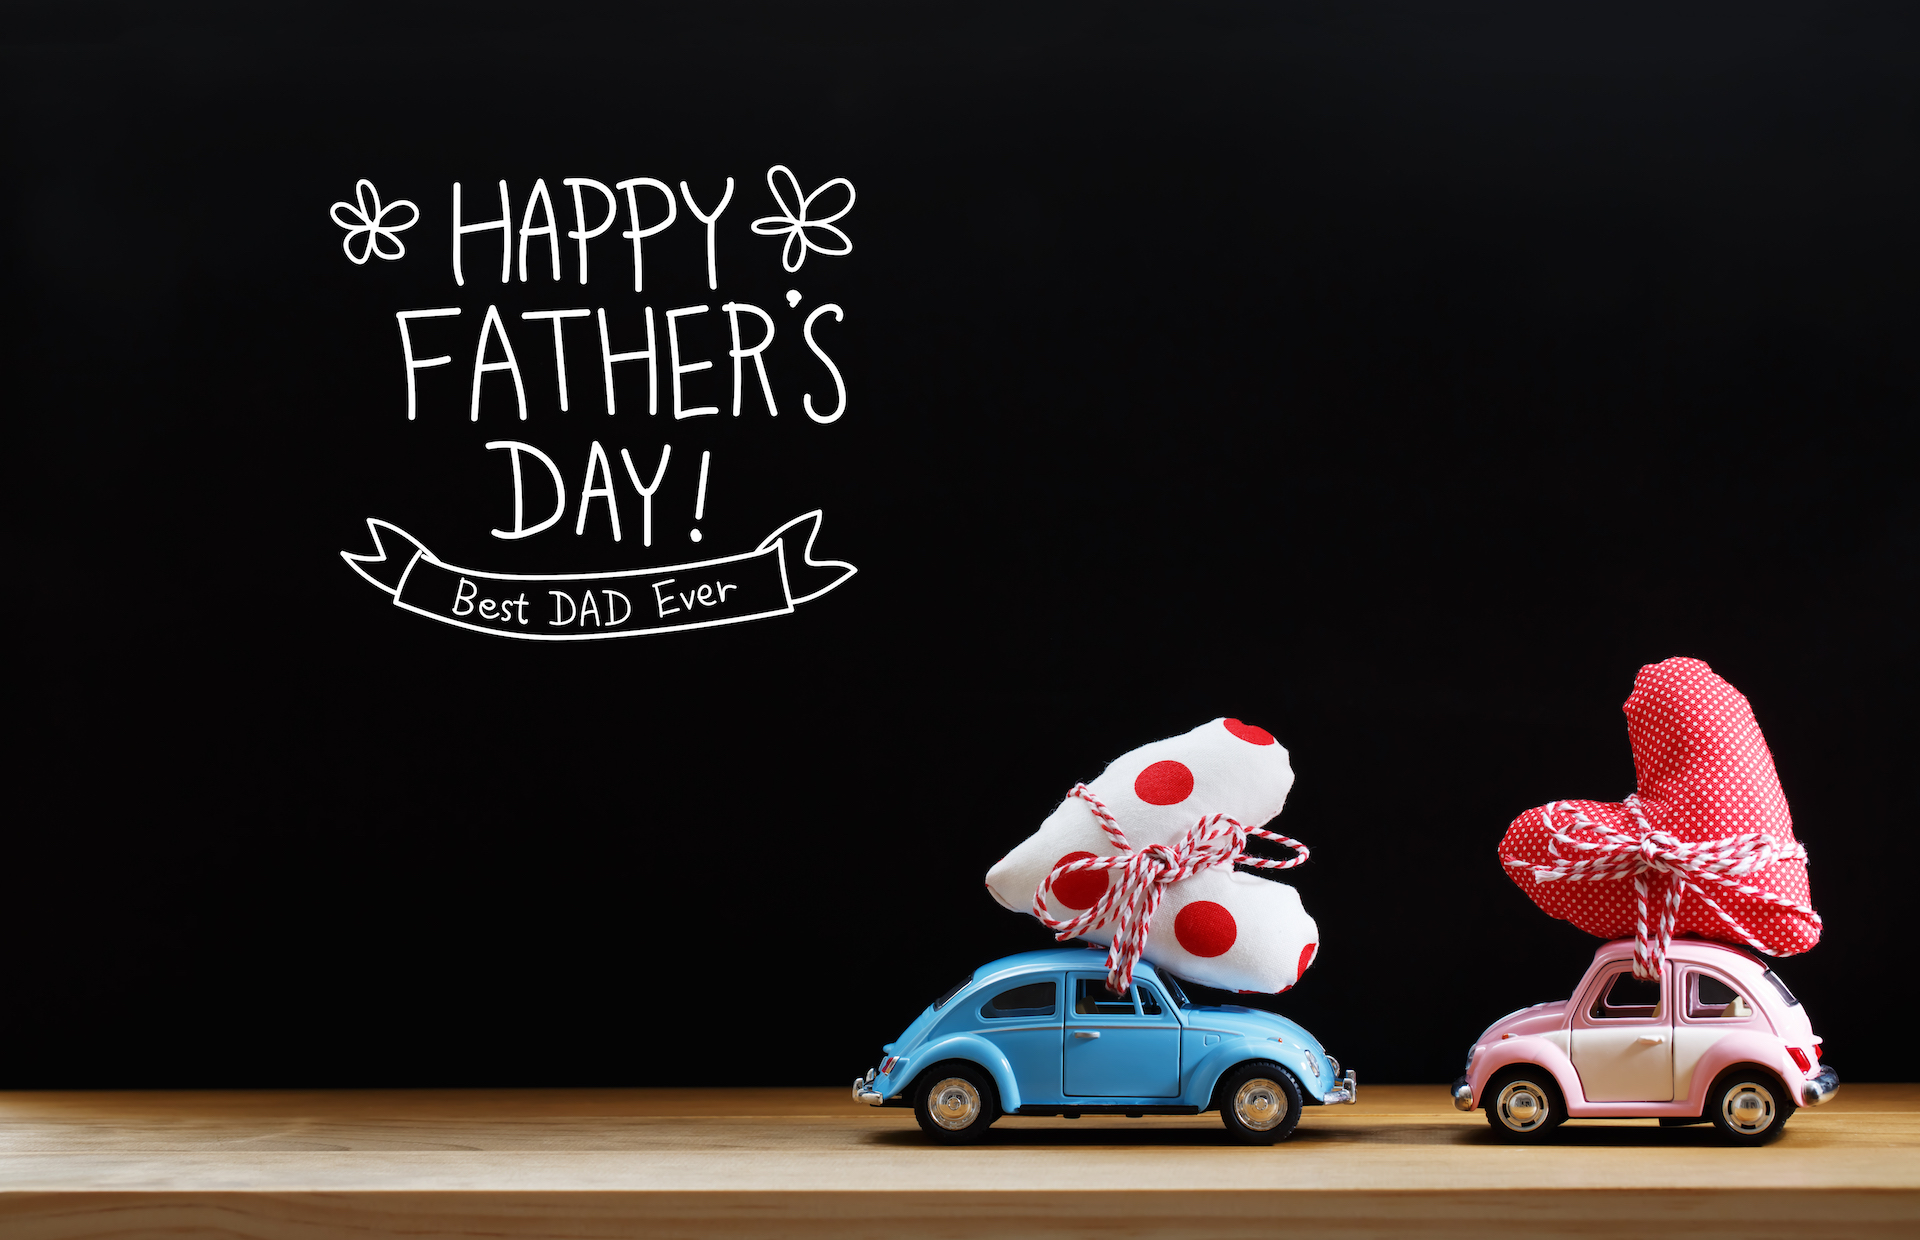 Fathers Day gifts, message with pink and blue cars